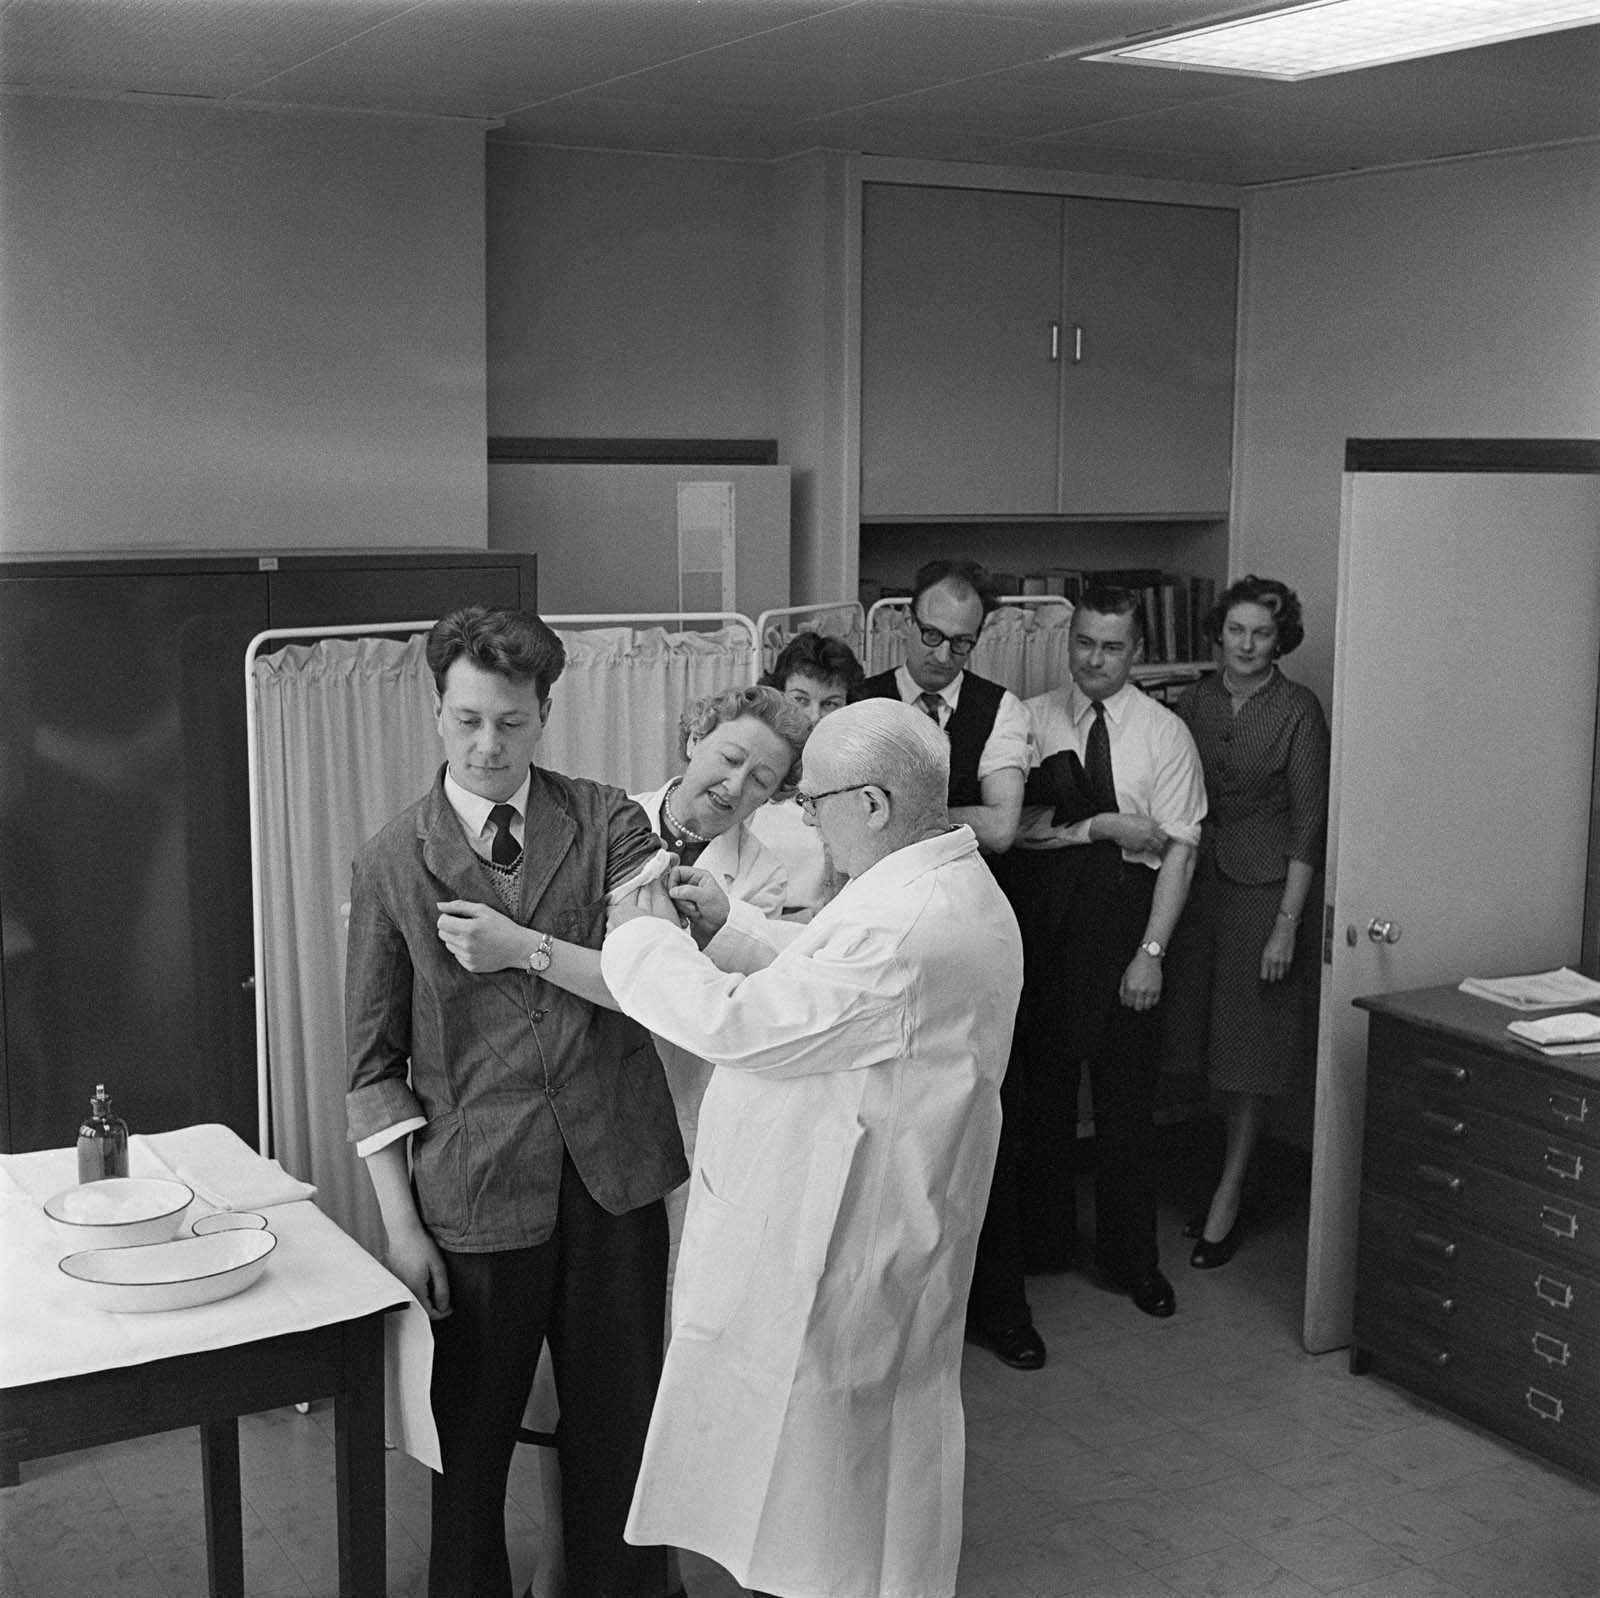 black and white photo of people waiting in line for an injection